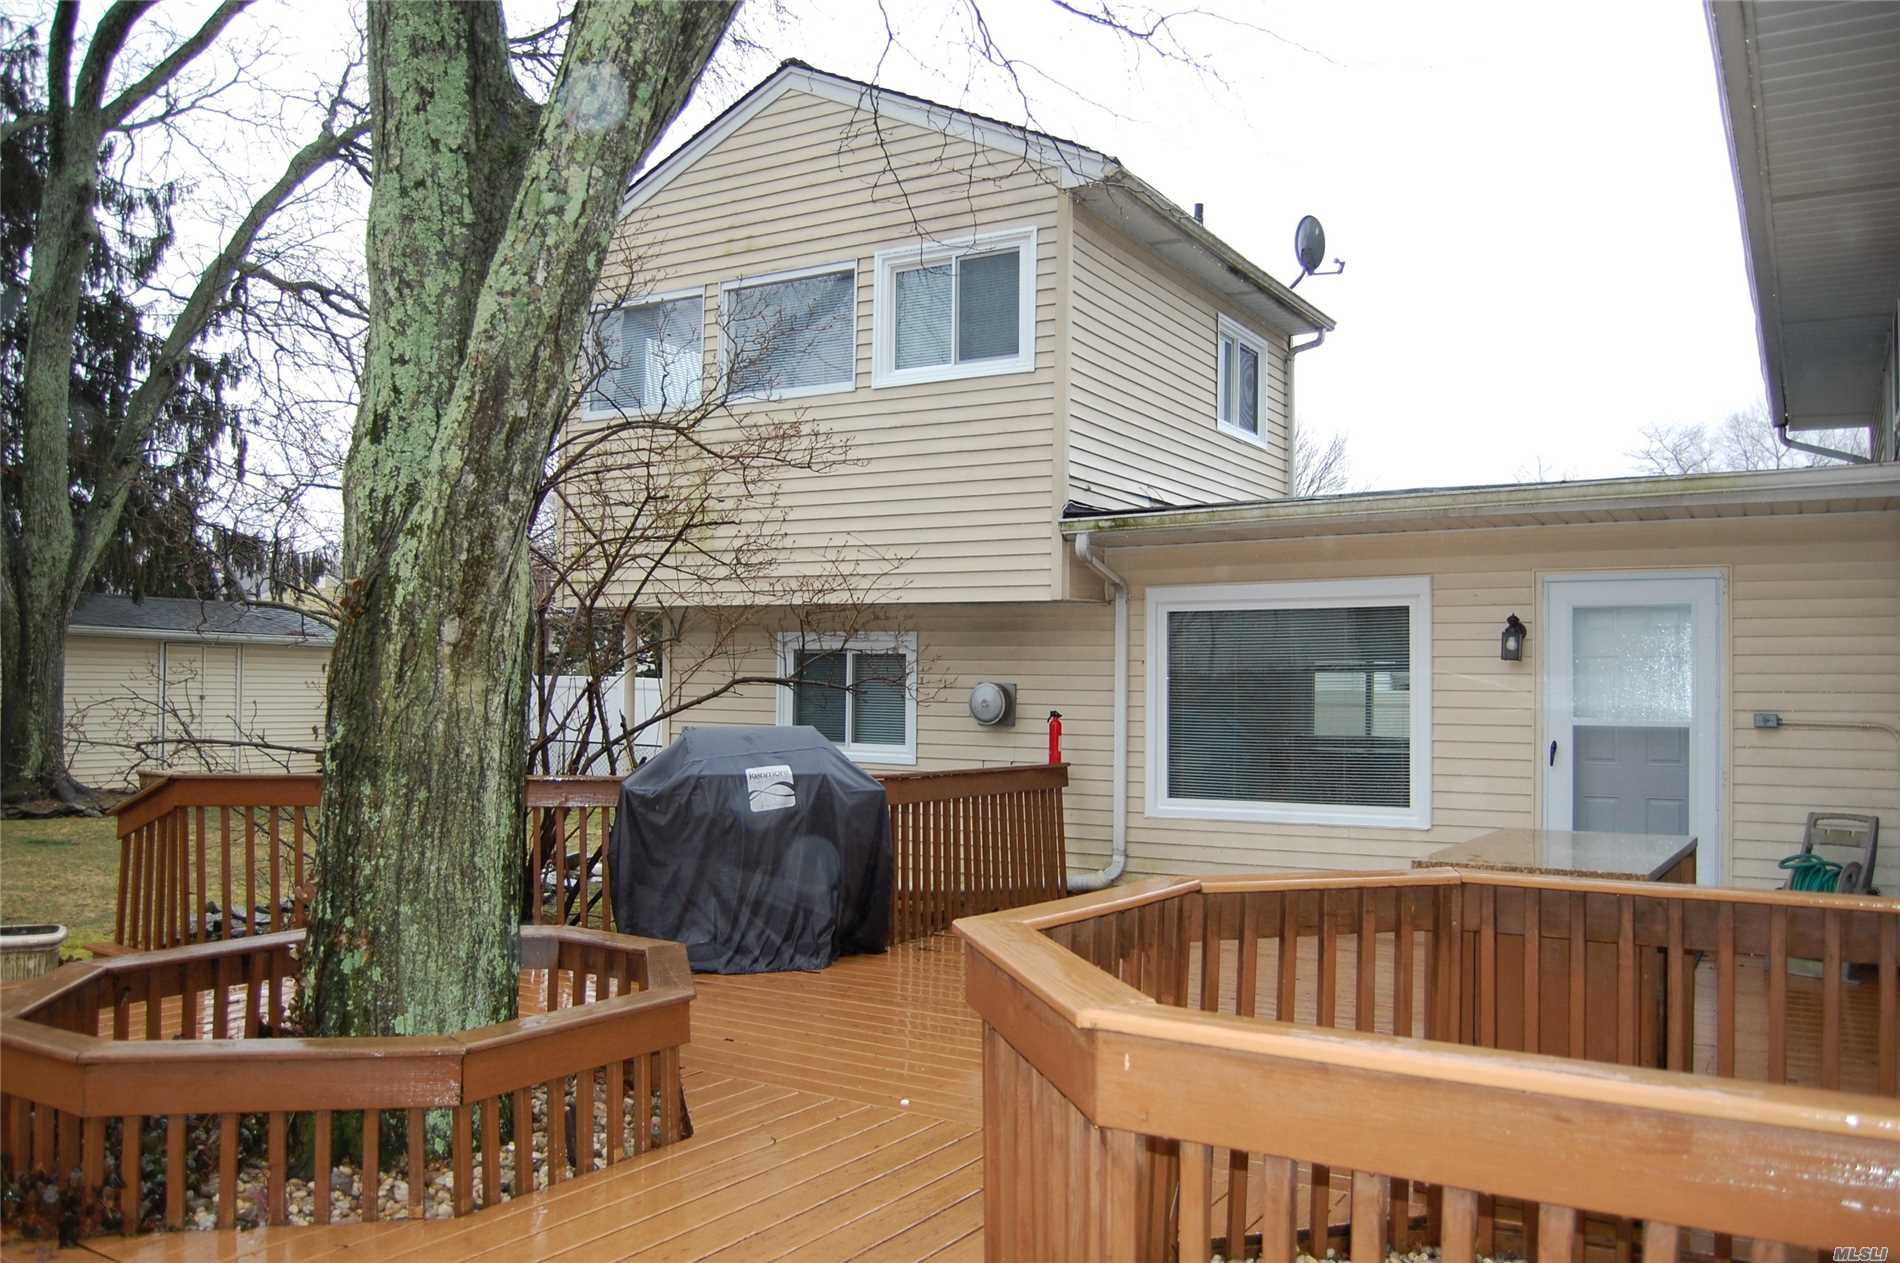 Updated/Versatile 1 Bedroom Apartment. Very Private W/Separate Entrance!New Kitchen, windows and Floors. Suitable for 1-2 People. Use of Yard and Deck Permitted. No Smoking Please.